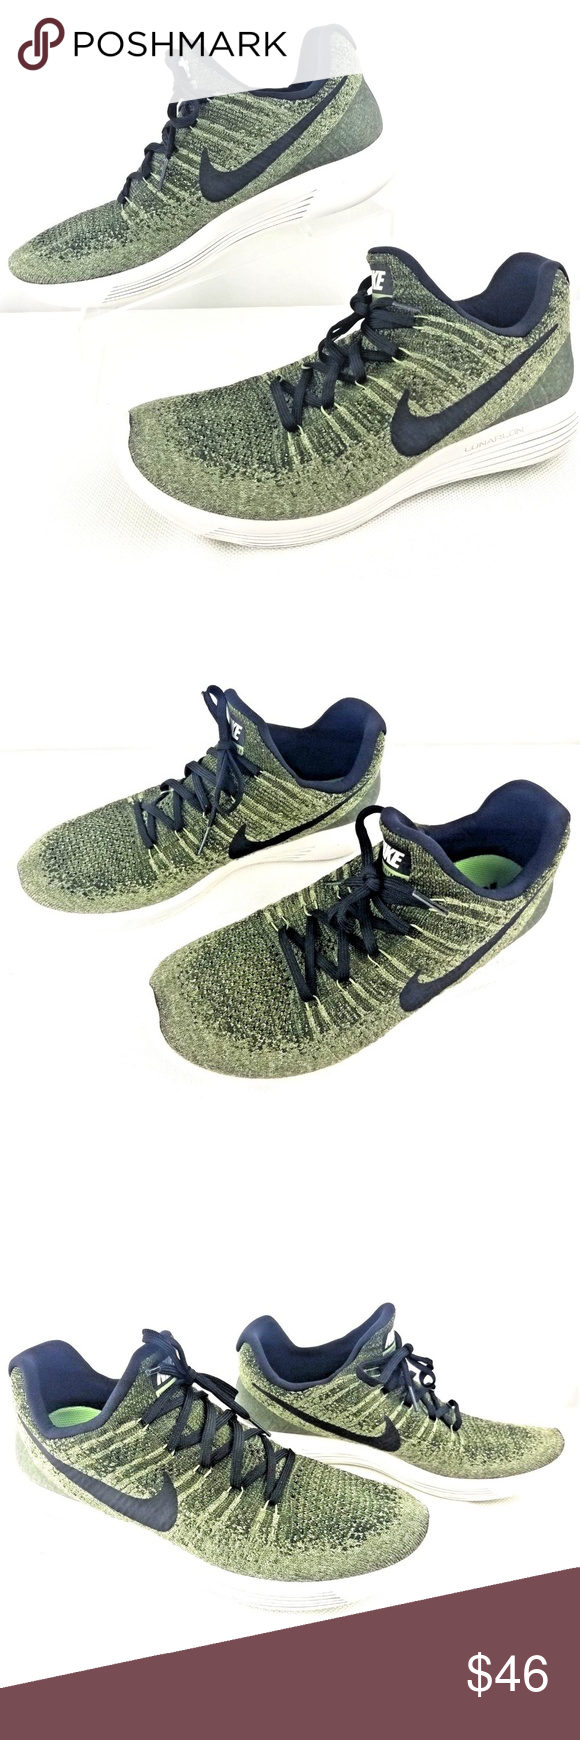 591619c76319 NIKE Men s Lunarepic Low Flyknit Running Shoes 10 Nike Lunarepic Low  Flyknit 2 Running Shoes Color